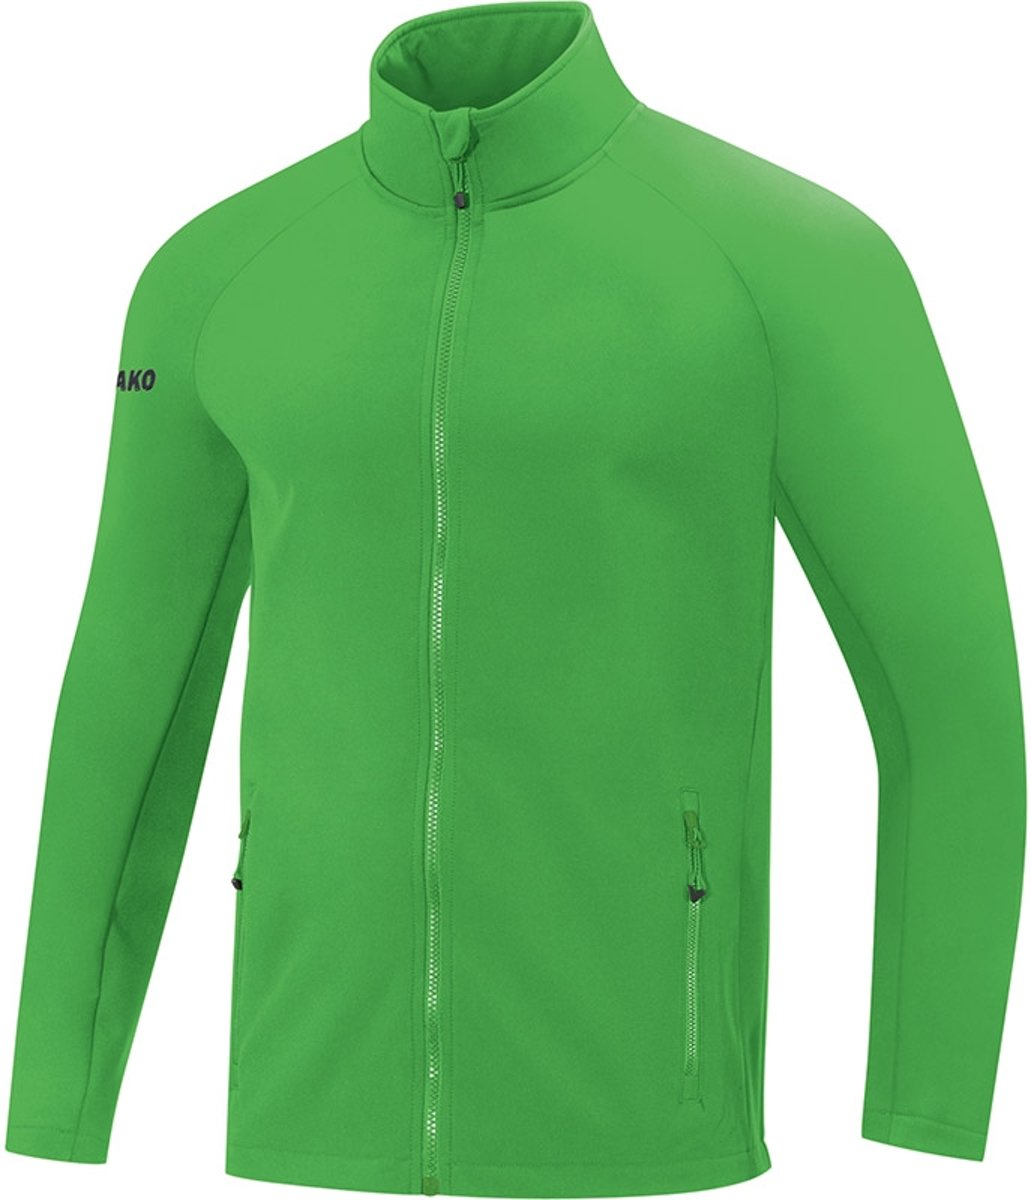 Jako Team Dames Softshell Jas - Softshelljassen  - groen - 38